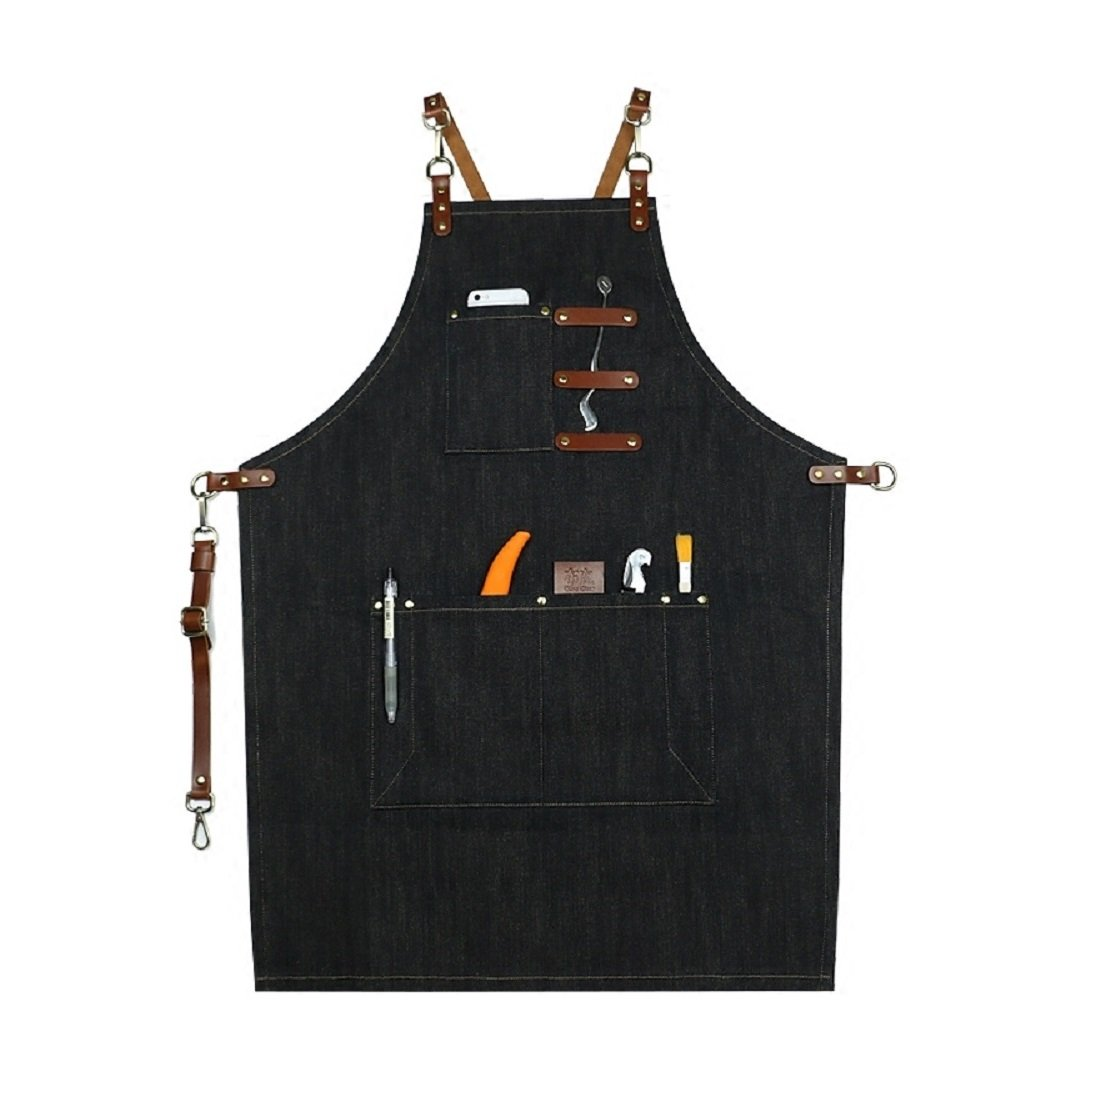 Home-organizer Tech Multi-Use Detachable Tool Apron Heavy Duty Denim Jean Work Apron Salon Barber Hairdressers Apron BBQ Gril Housewife Apron with Pockets, Adjustable for Men & Women by Home-organizer Tech